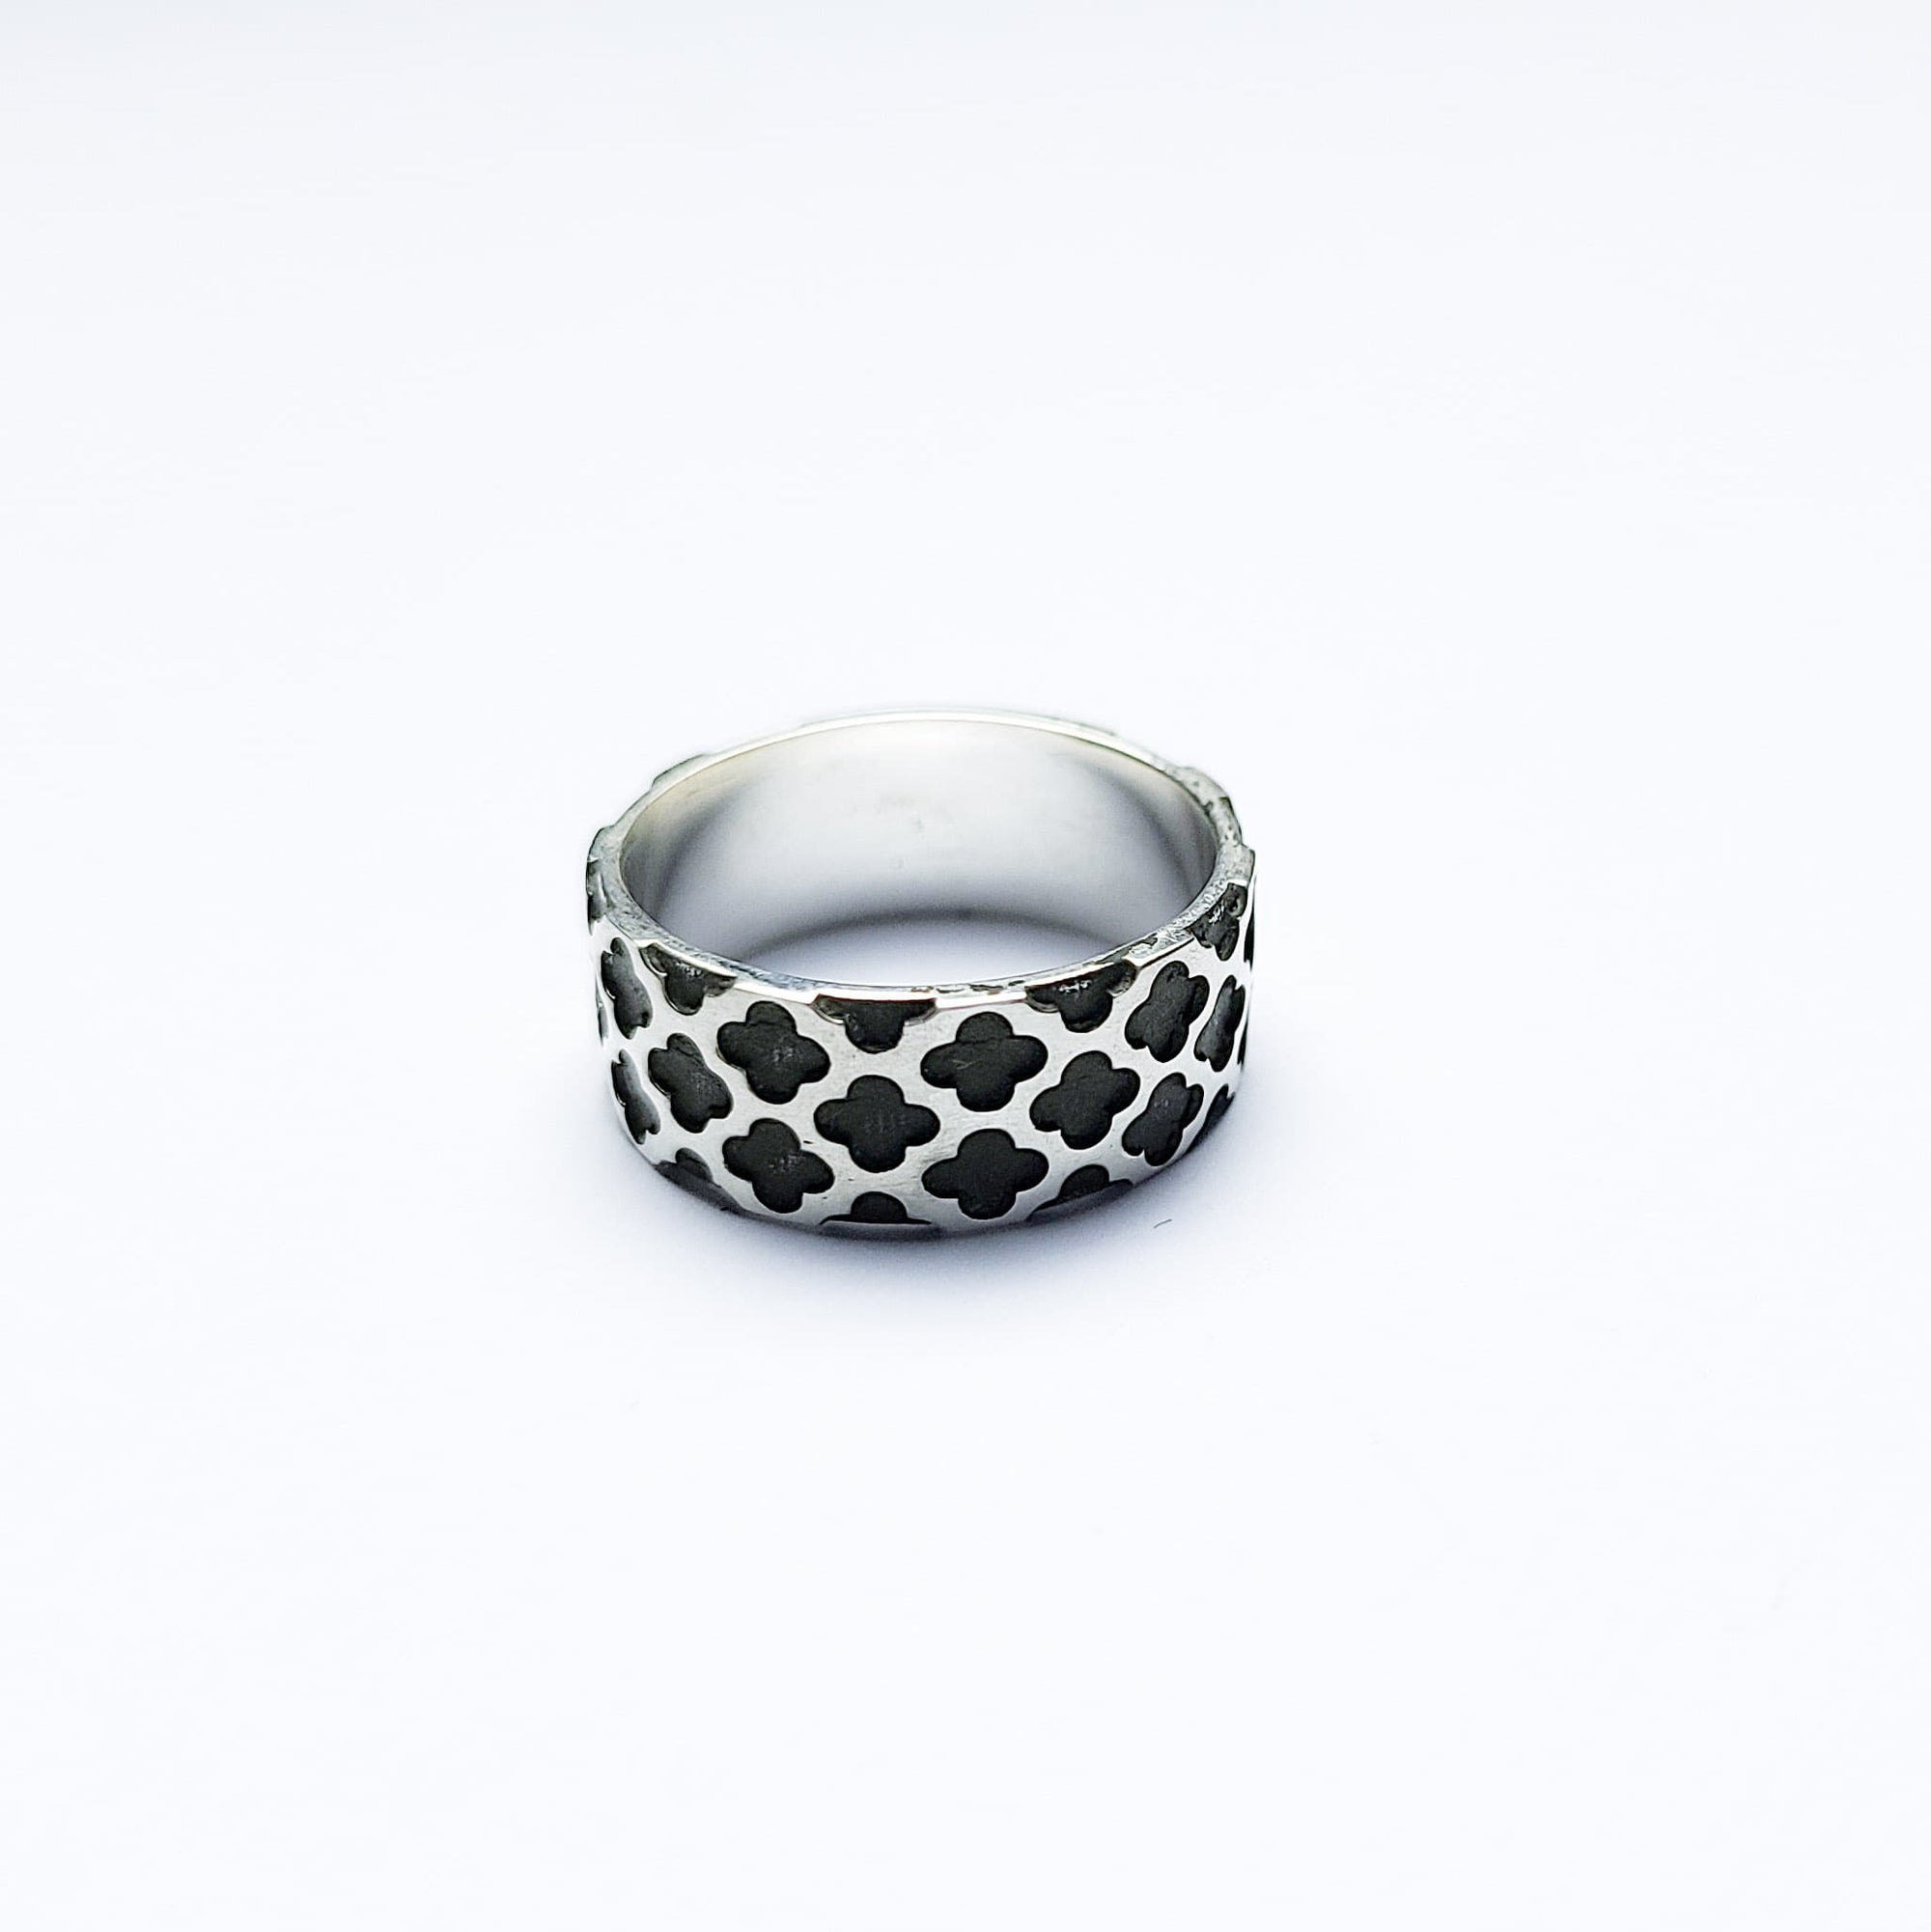 8mm Wide Confessional Pattern Ring Band-Ring-Inchoo Bijoux-Inchoo Bijoux